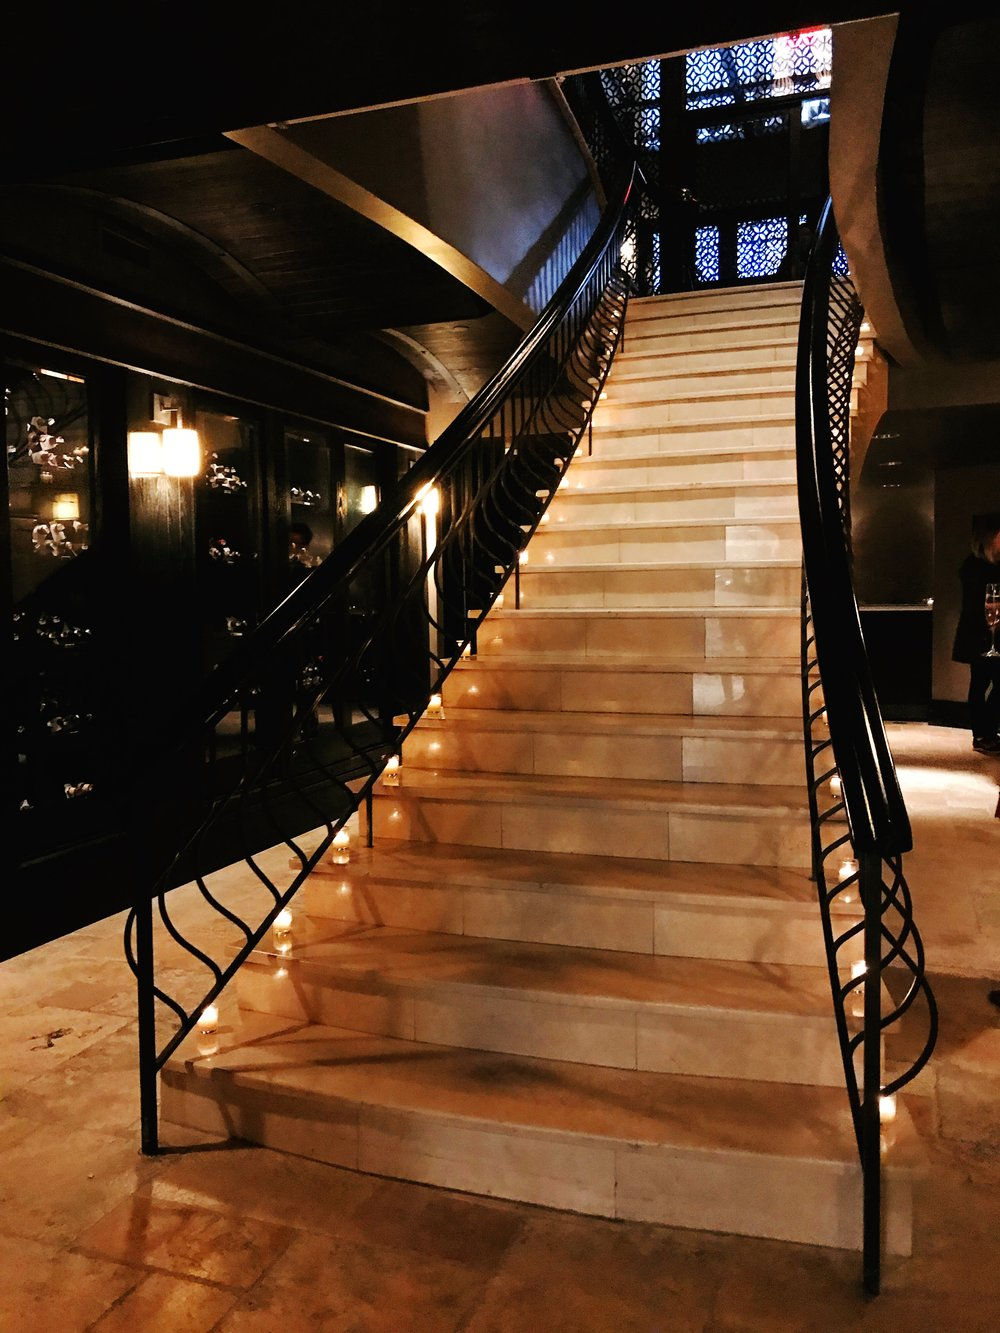 a v gossip girl moment coming down this stunning staircase -